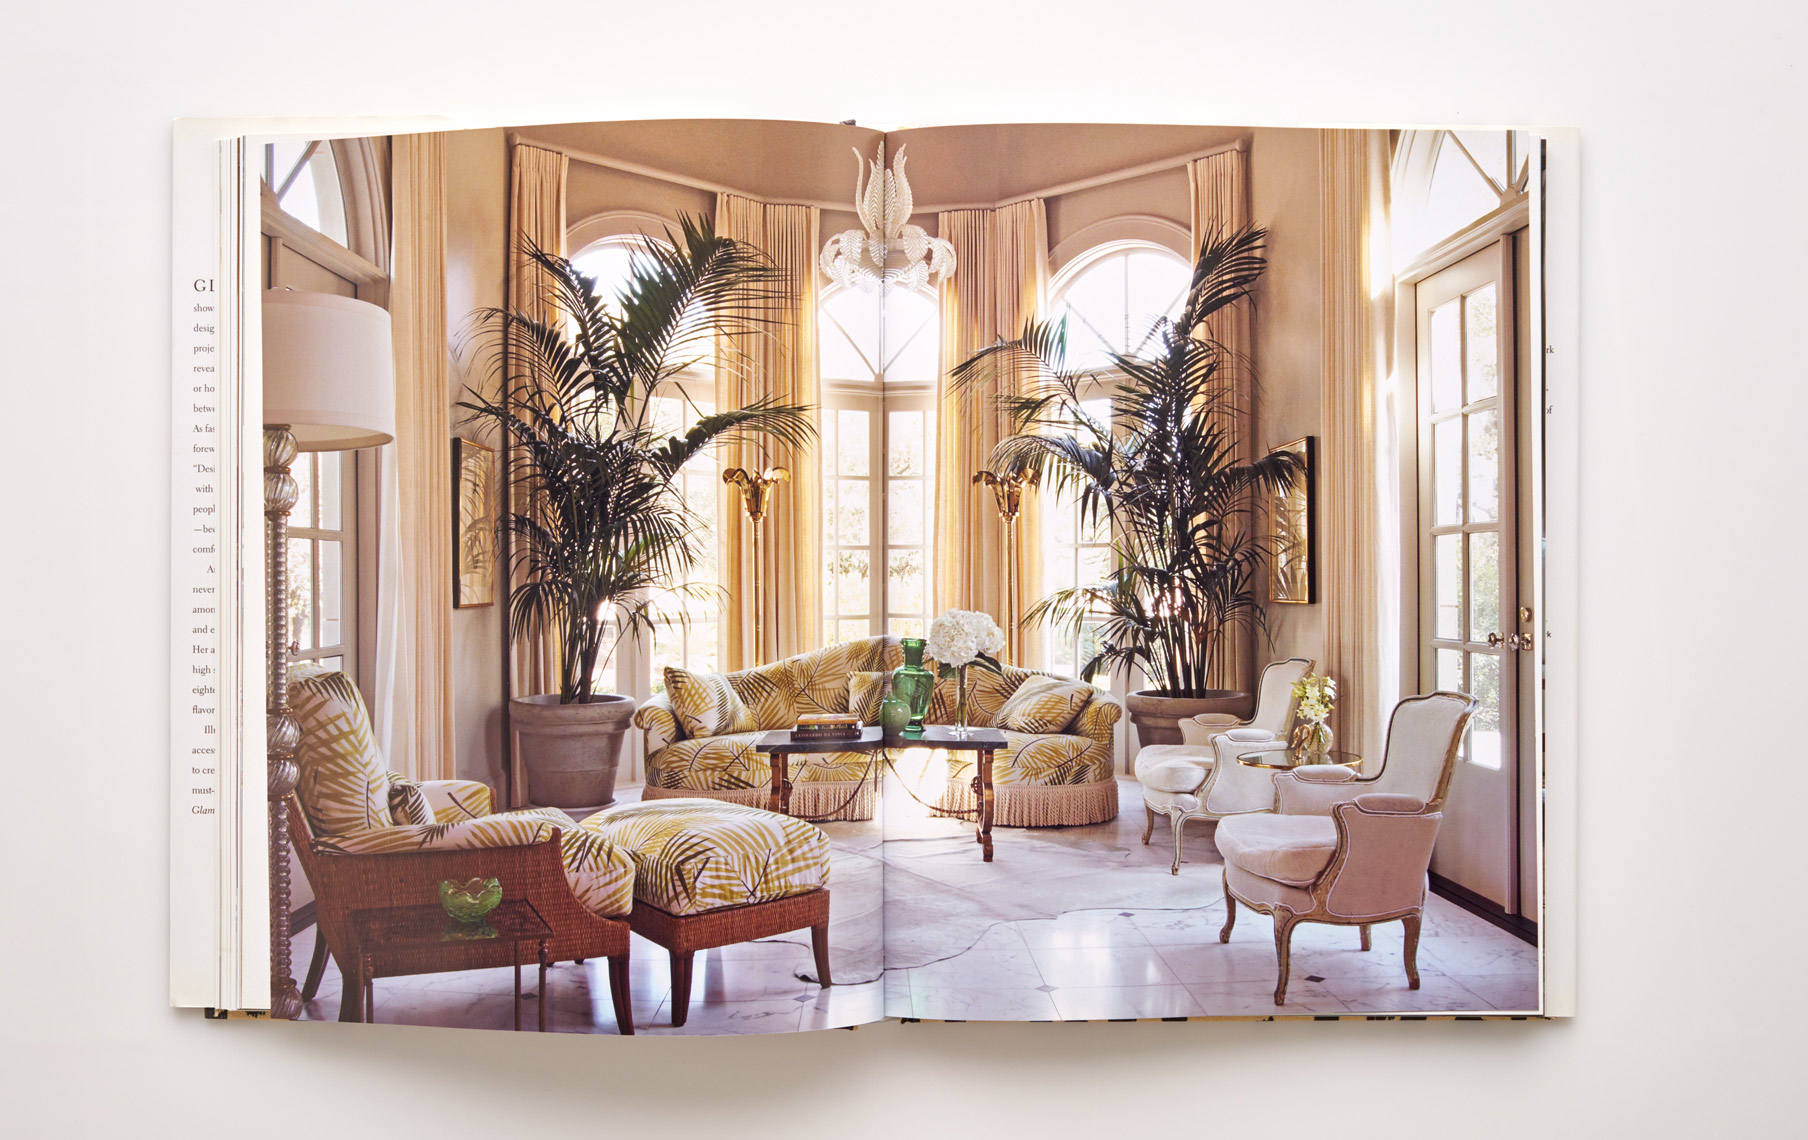 Stephen Karlisch Jan Showers Glamorous Rooms Living Room Tropical